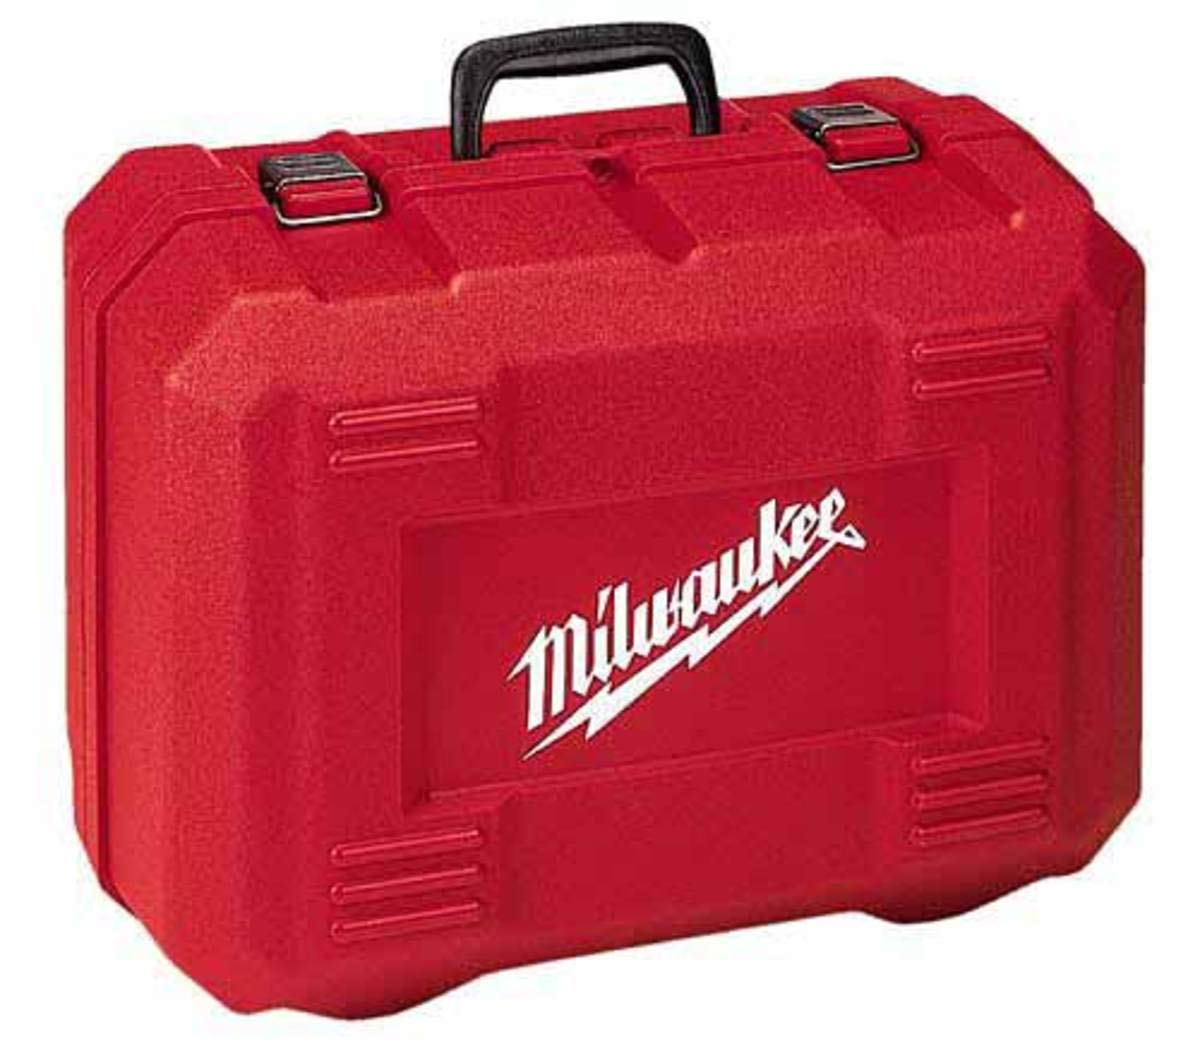 Milwaukee Rust Proof Plastic Red Carrying Case For Circular Saws, Package Size: 1 Each